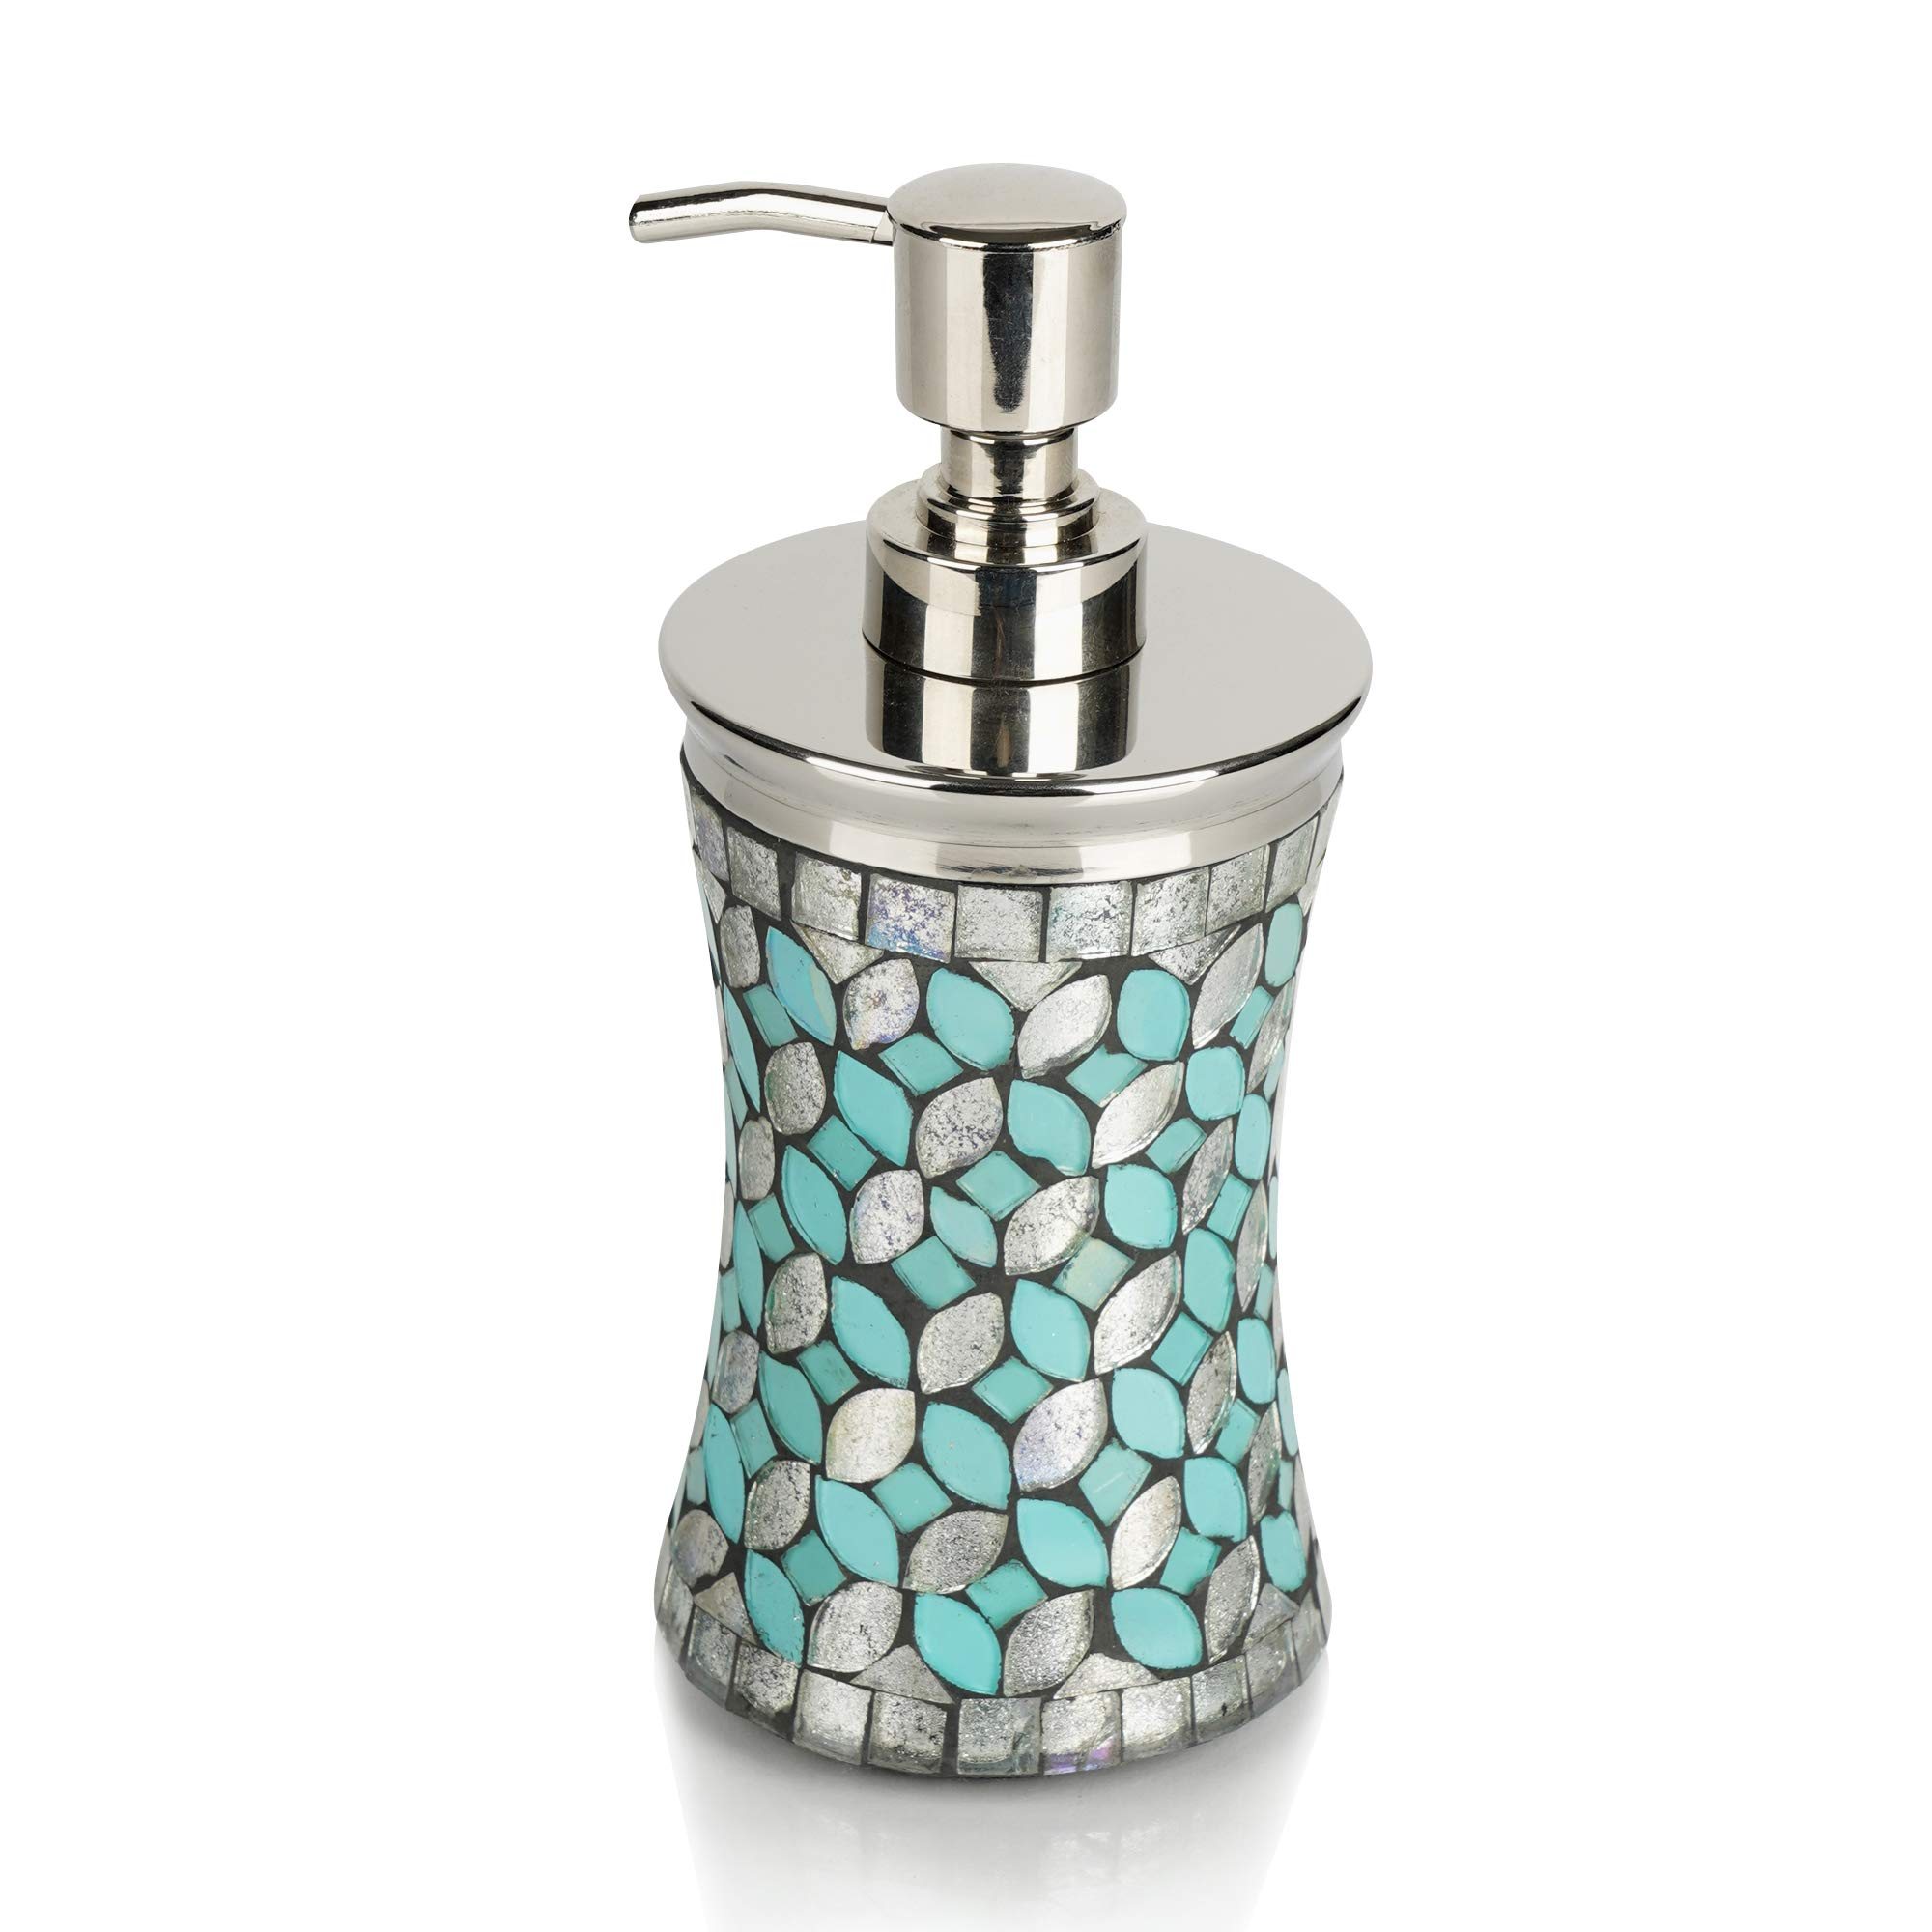 nu steel SF6H Sea Foam Collection Lotion Pump, Dispenser with Refillable Bottle, Ideal for Liquid Soaps, Glass Mosaic with Aqua Finish